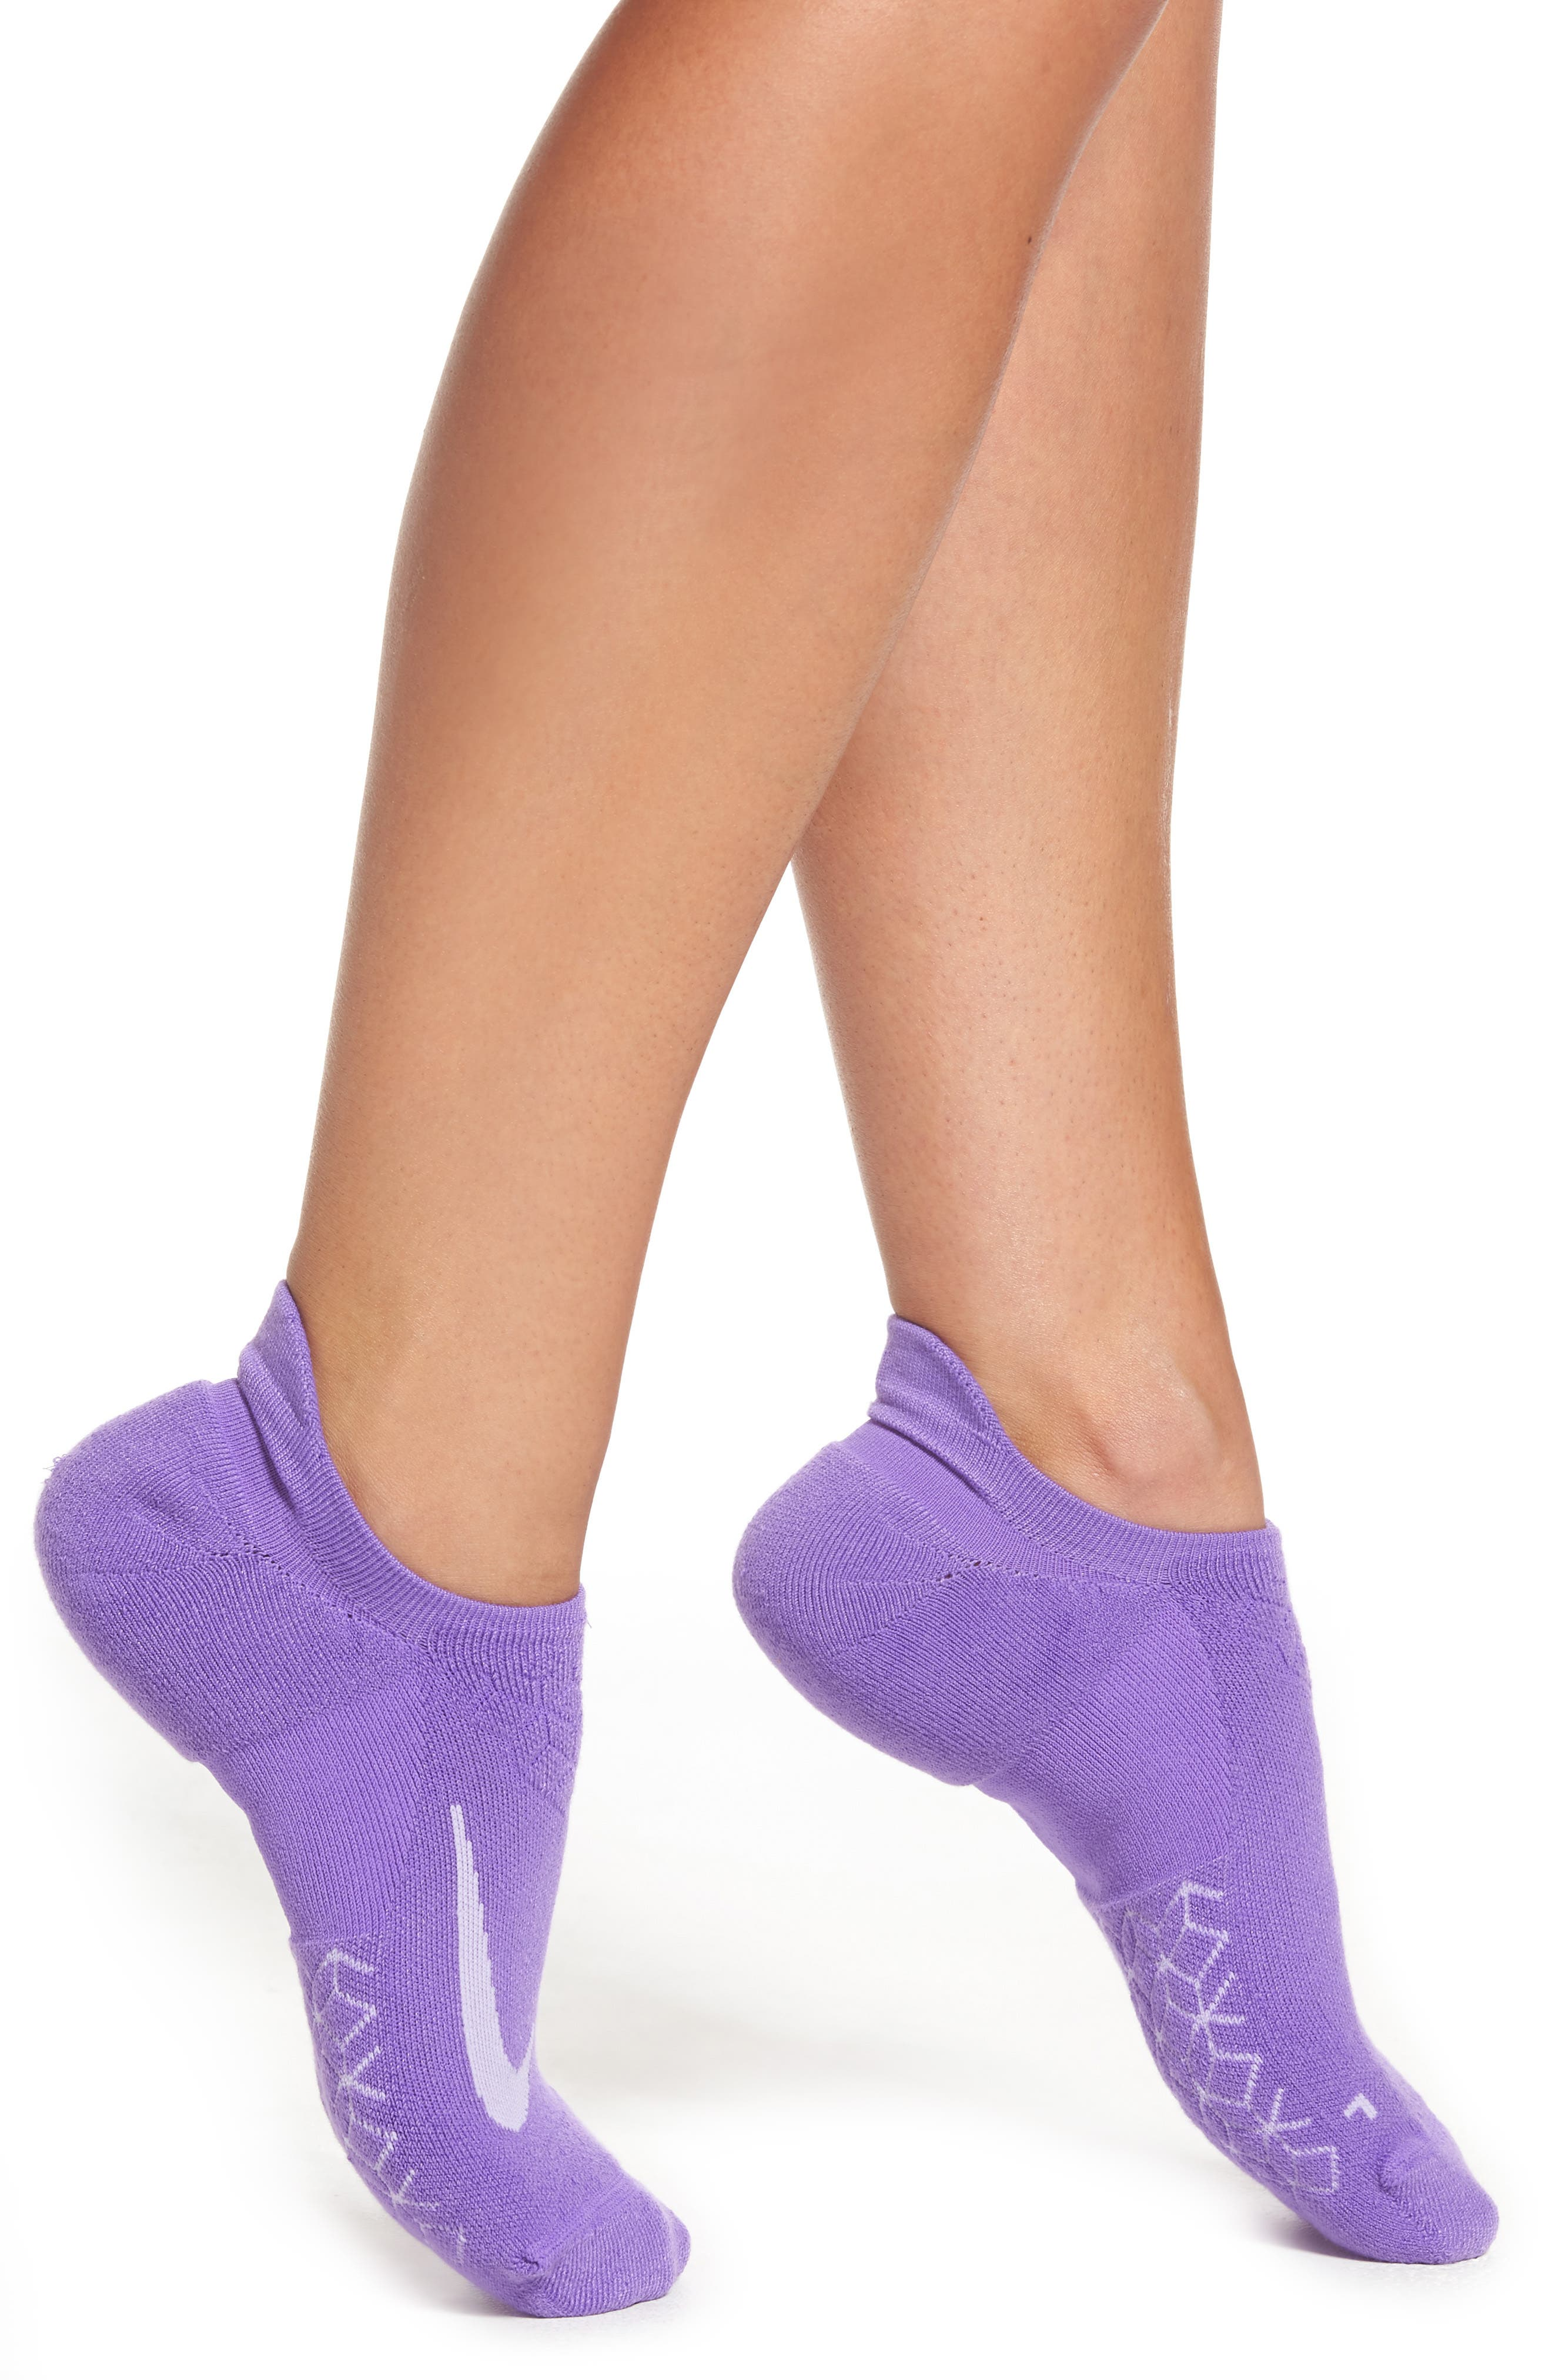 Elite No-Show Running Socks,                         Main,                         color, 560